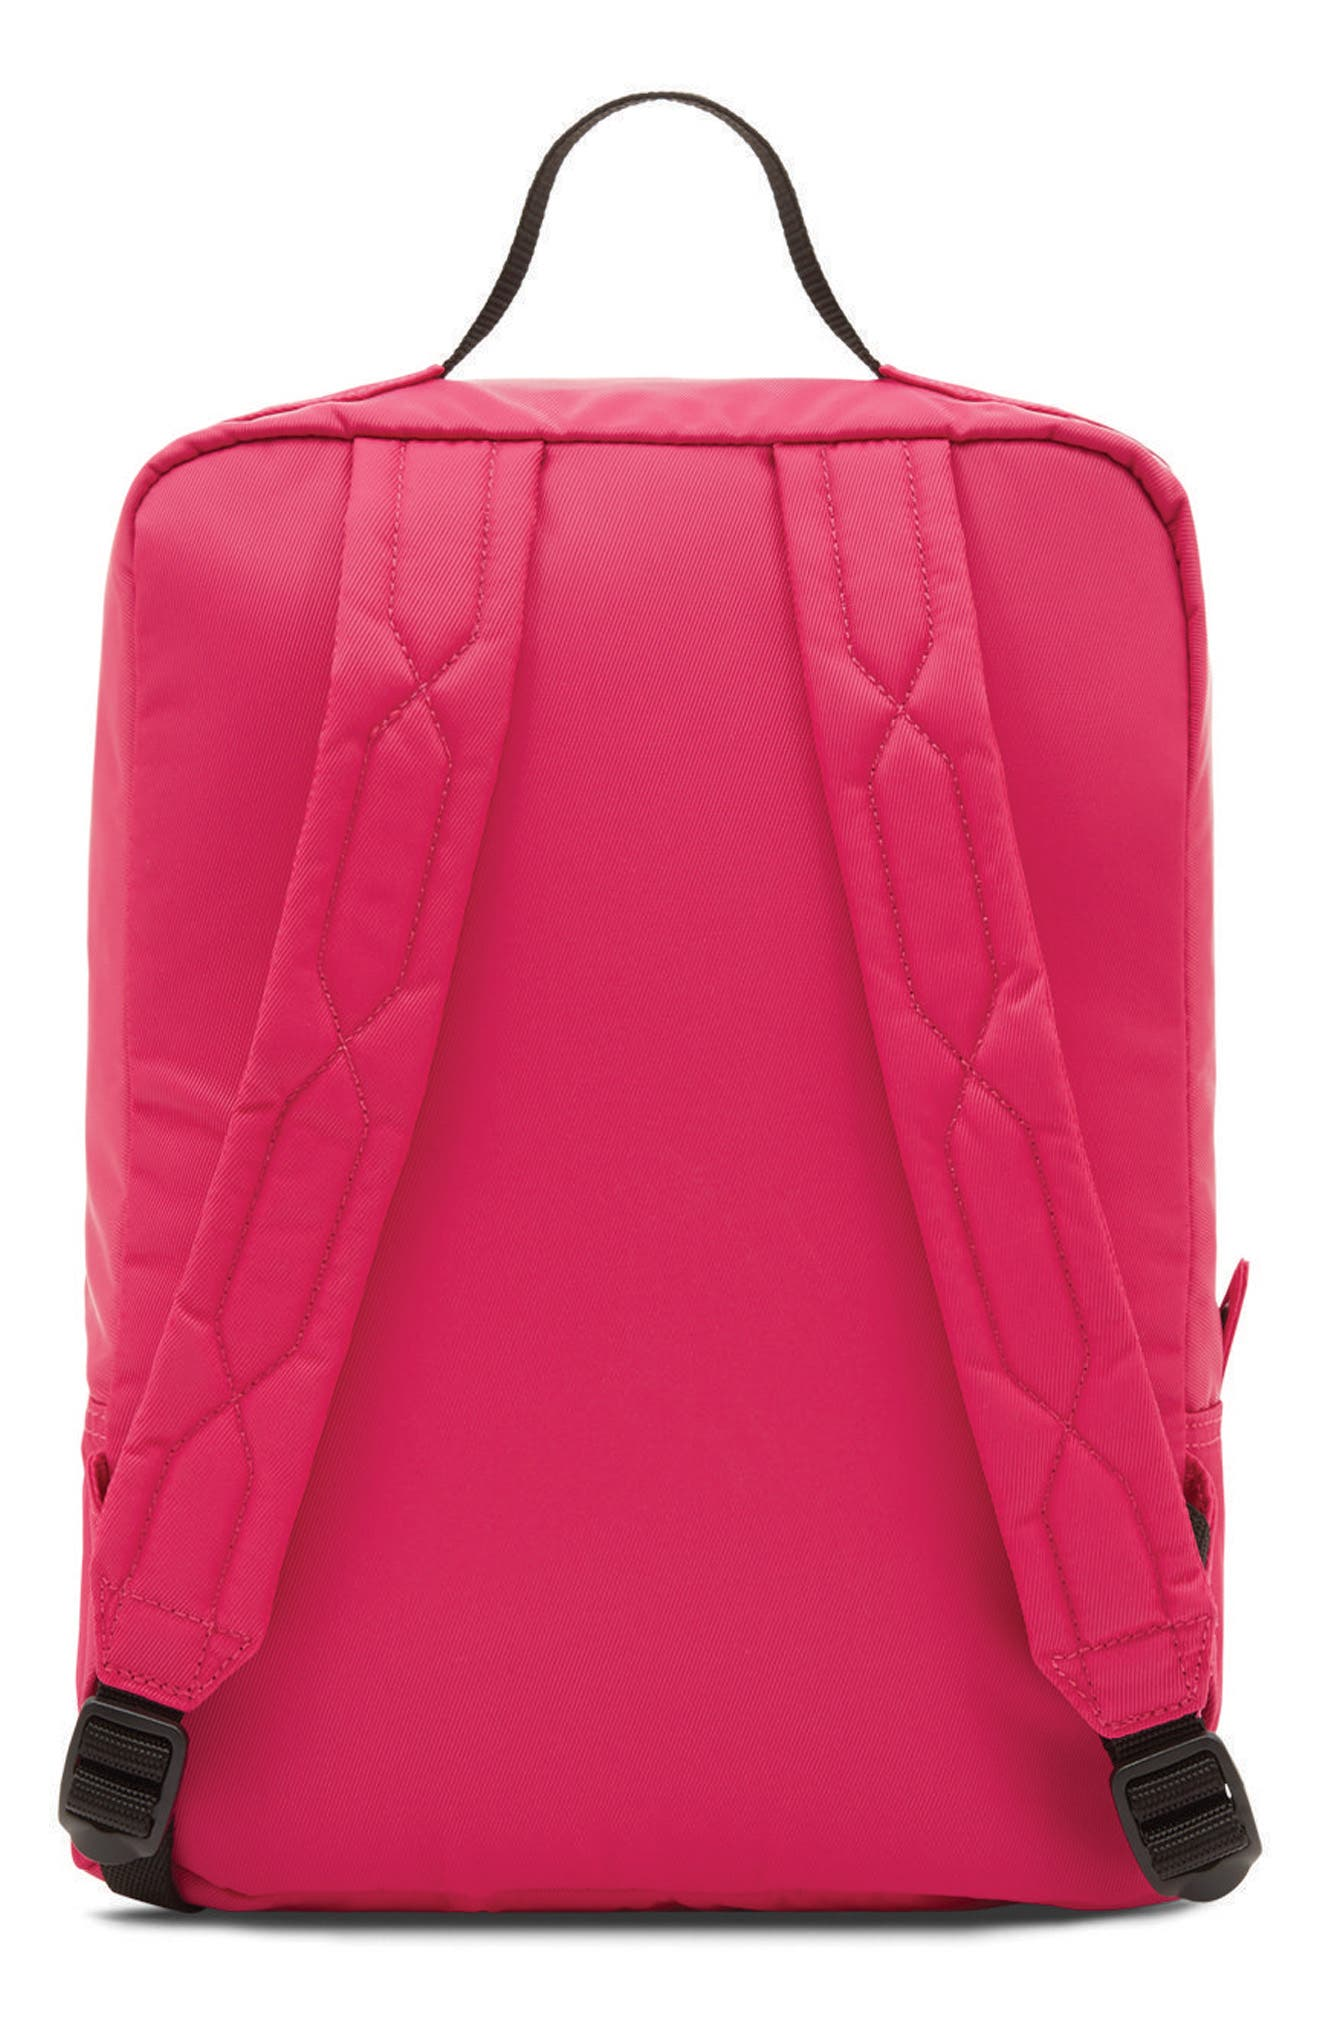 Original Water Resistant Nylon Backpack,                             Alternate thumbnail 2, color,                             BRIGHT PINK